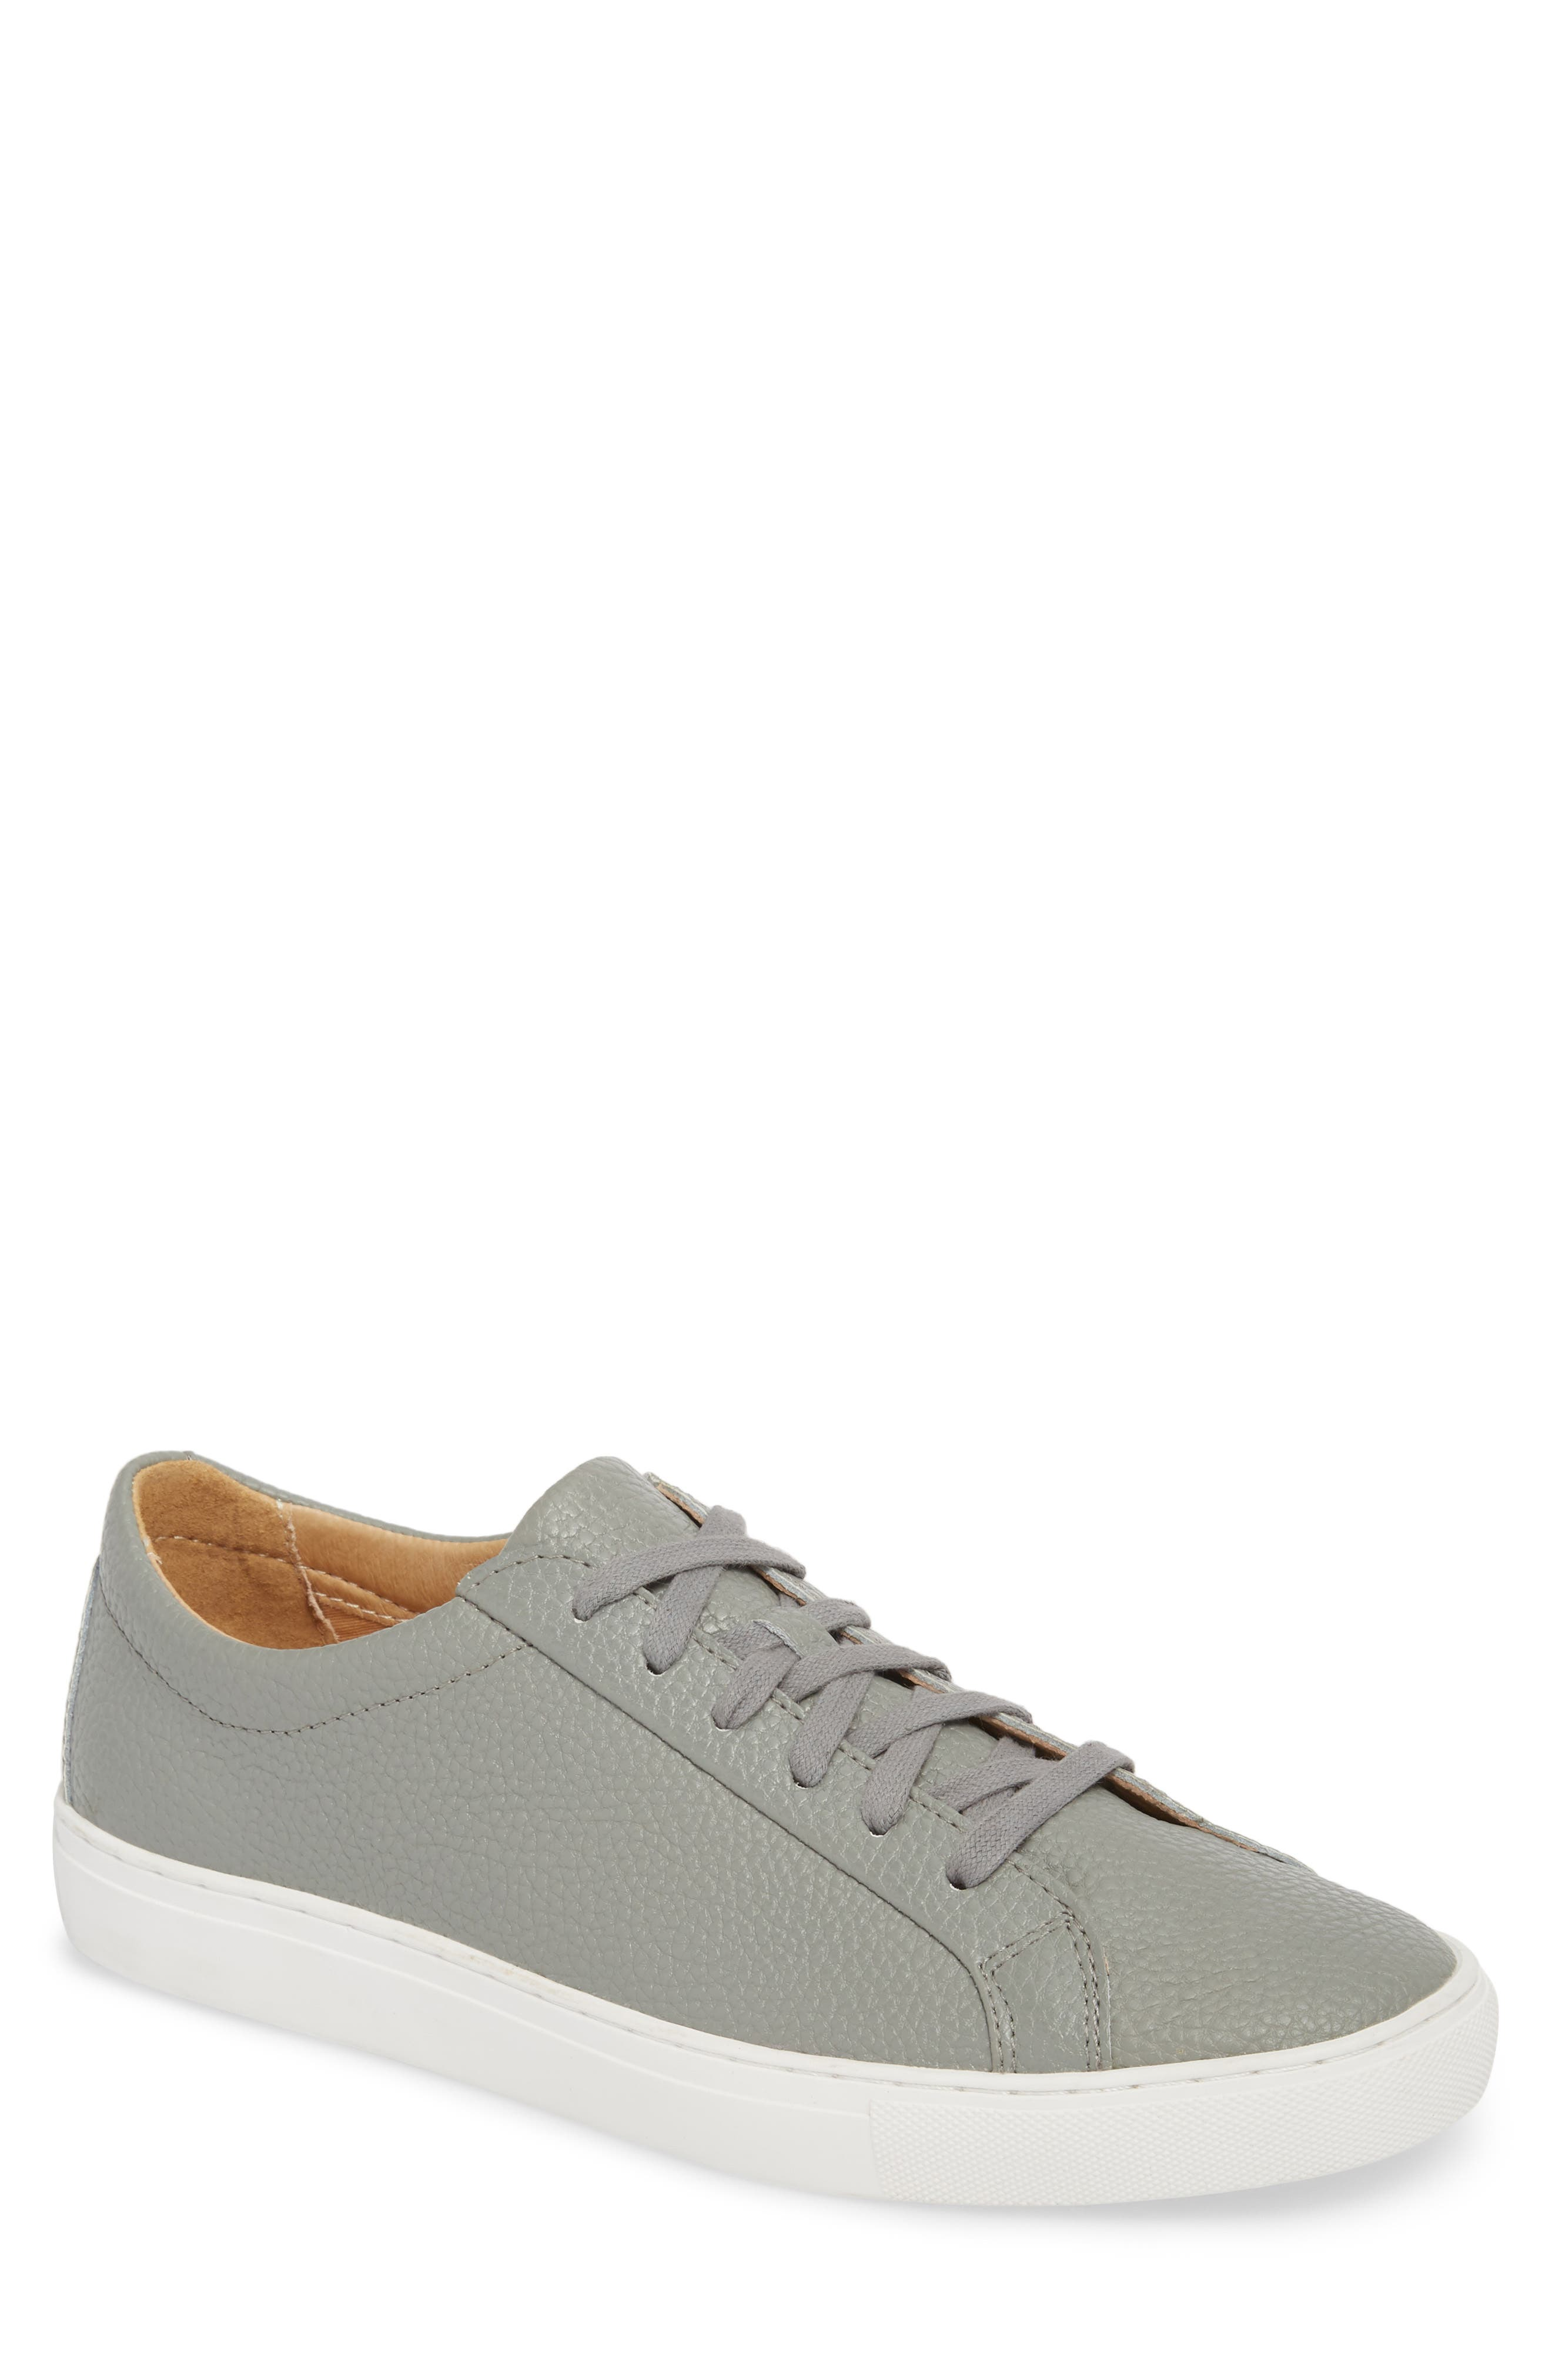 Kennedy Low Top Sneaker,                             Main thumbnail 1, color,                             RIVER ROCK LEATHER